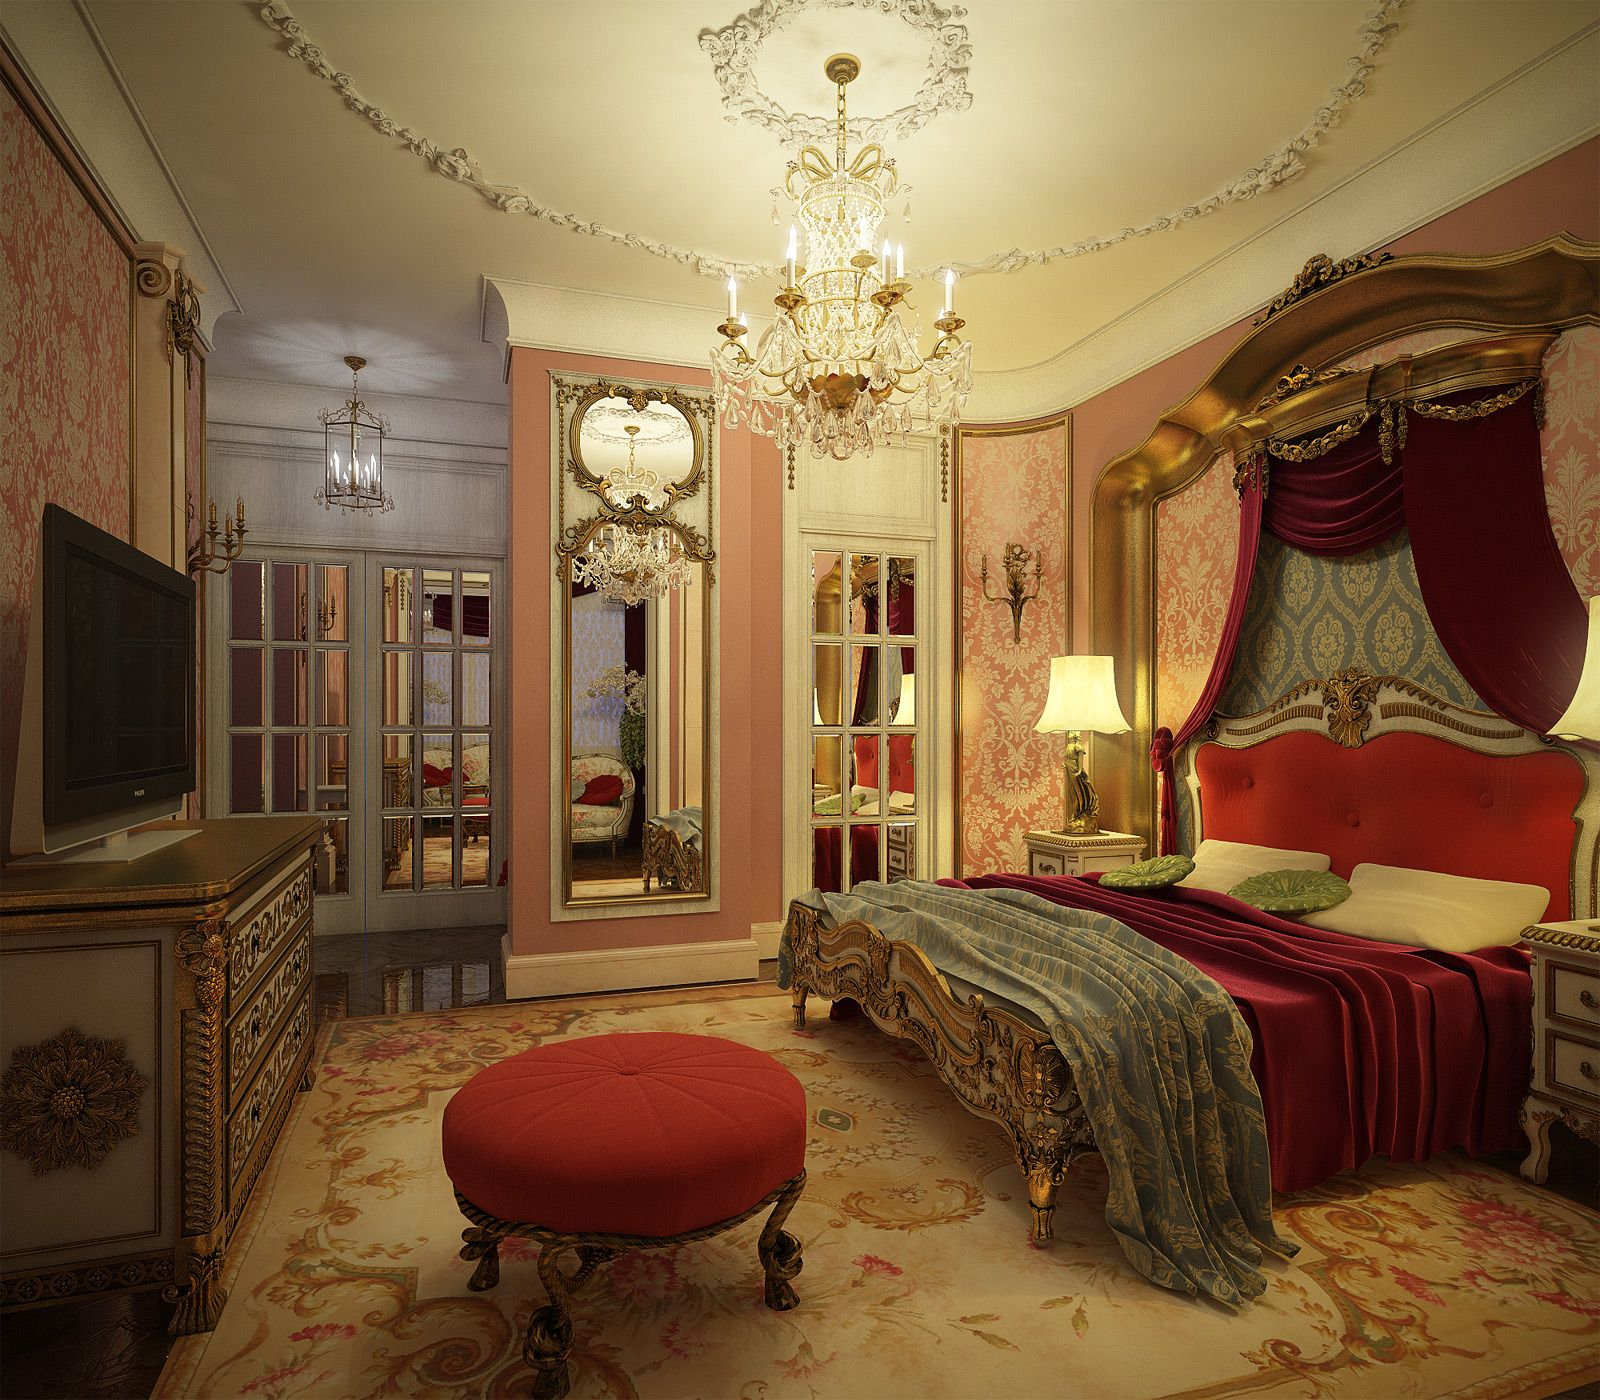 The Most Amazing Bedroom I Have Ever Seen! Opulent Bedroom